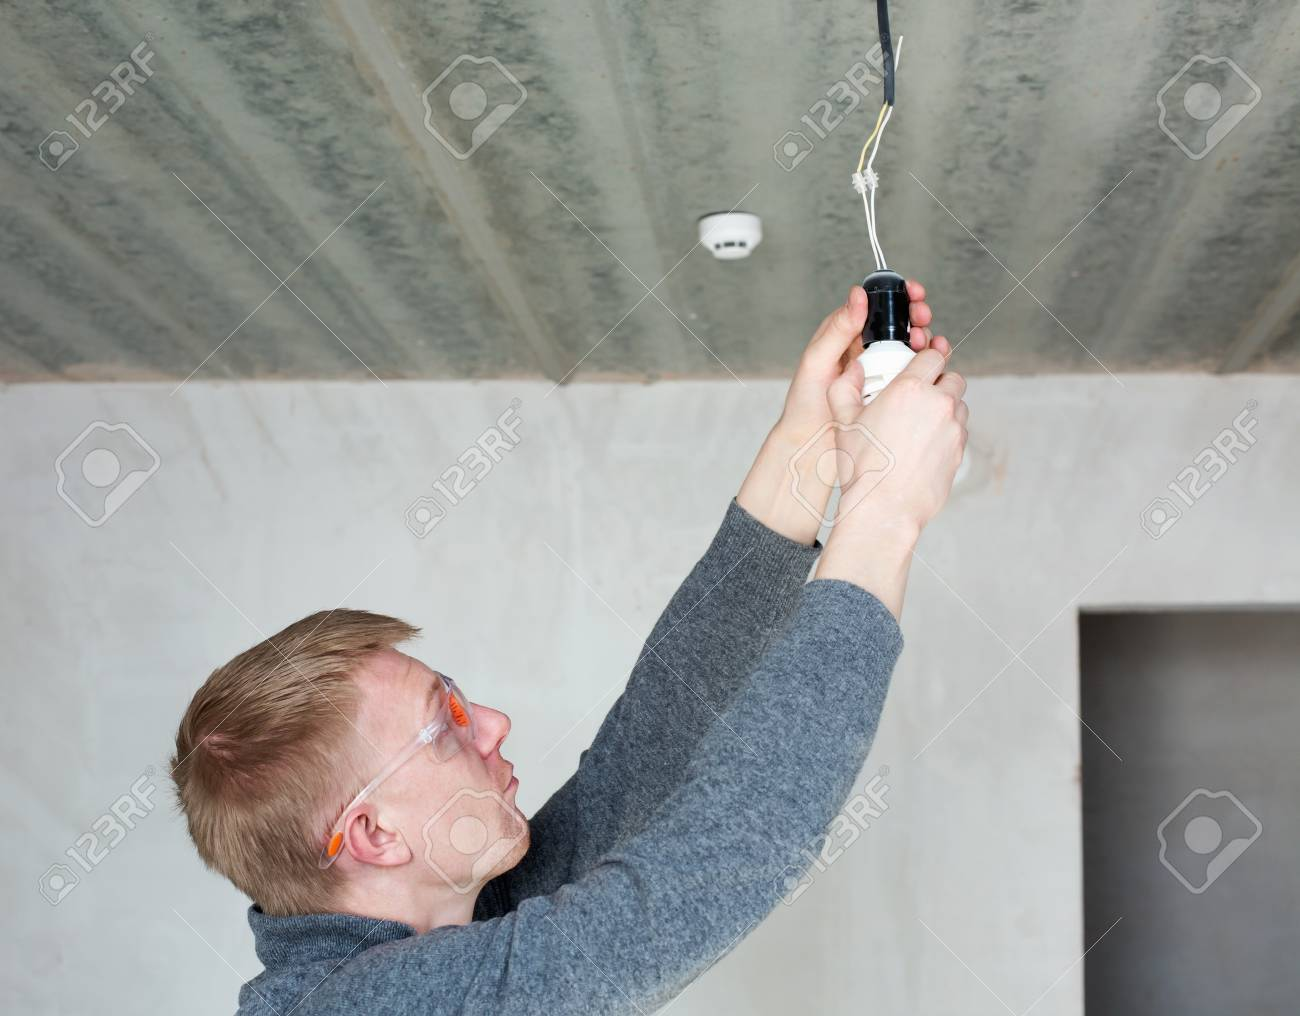 A man in safety glasses changing energy saving light bulbs - 47070189